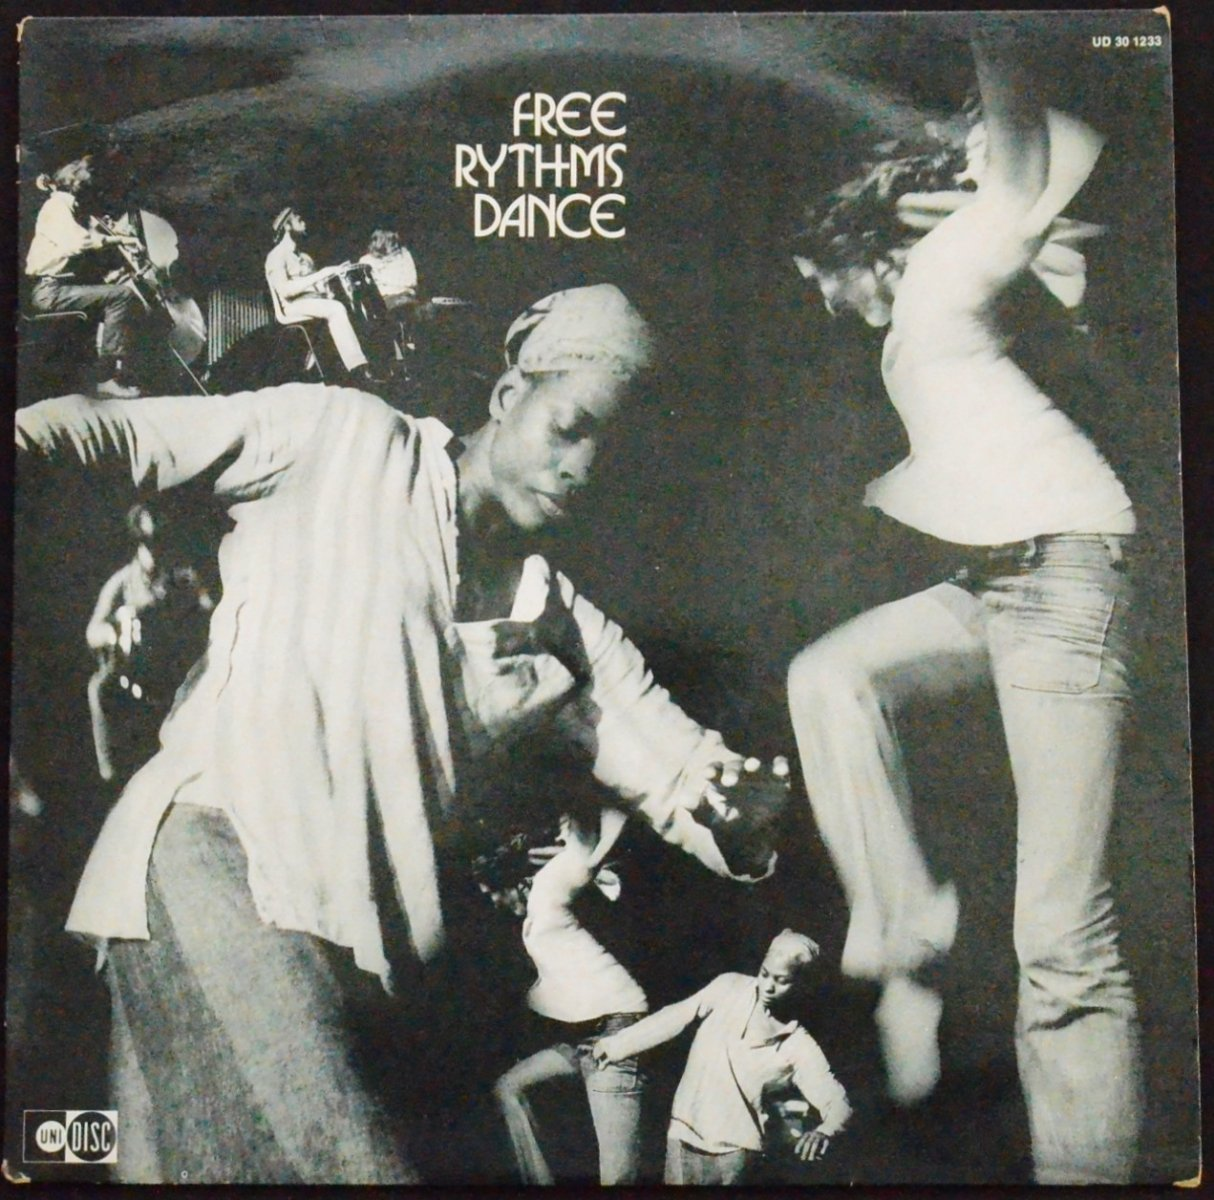 FREE DANCE SONG ‎/ FREE RYTHMS DANCE (LP)